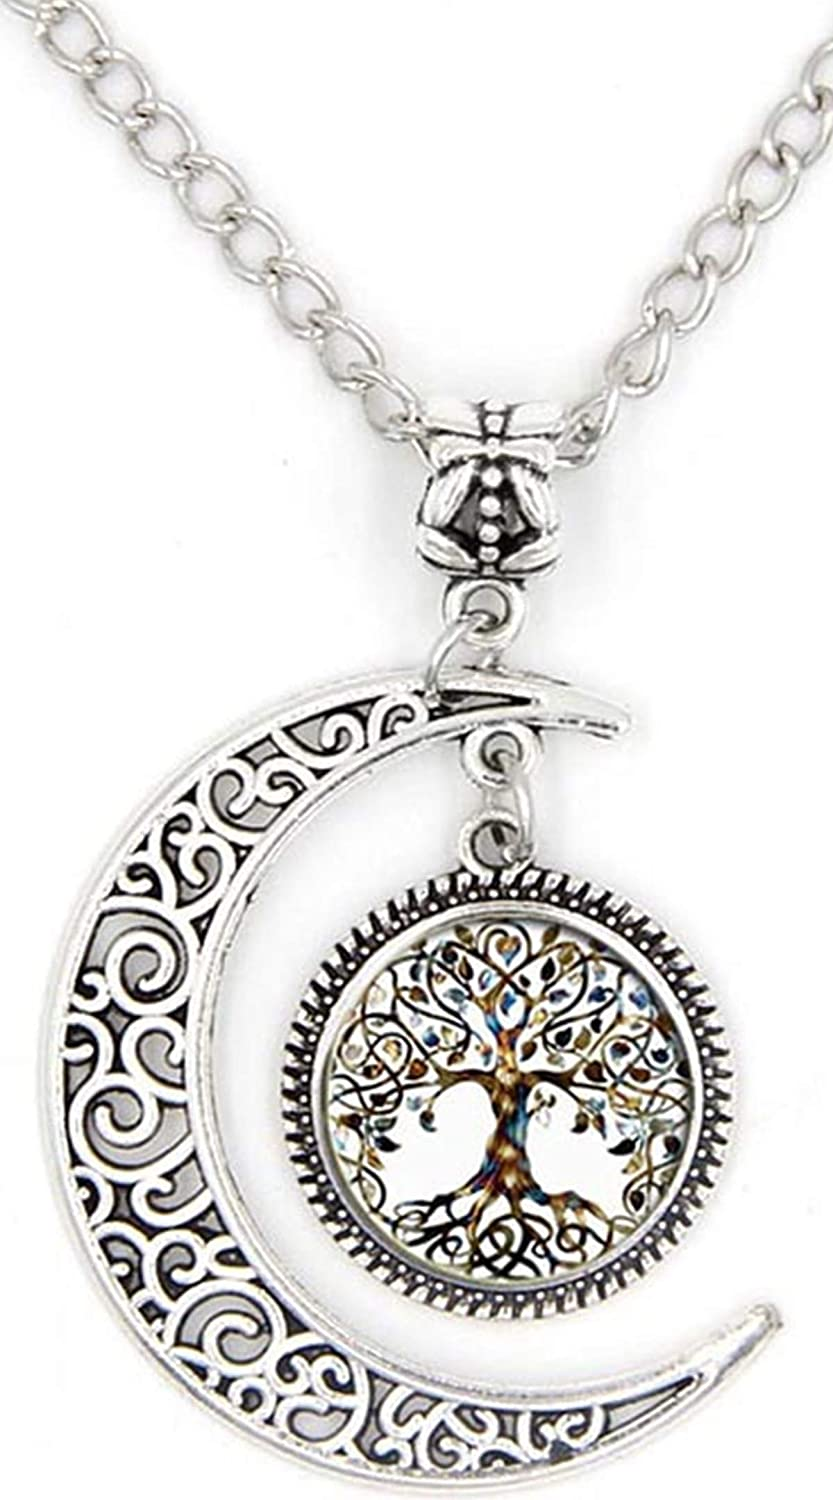 Birthday Gifts Jewelry for Women//Girls HQ Cremation Jewelry Love God Cross Pendant Necklace with Birthstone